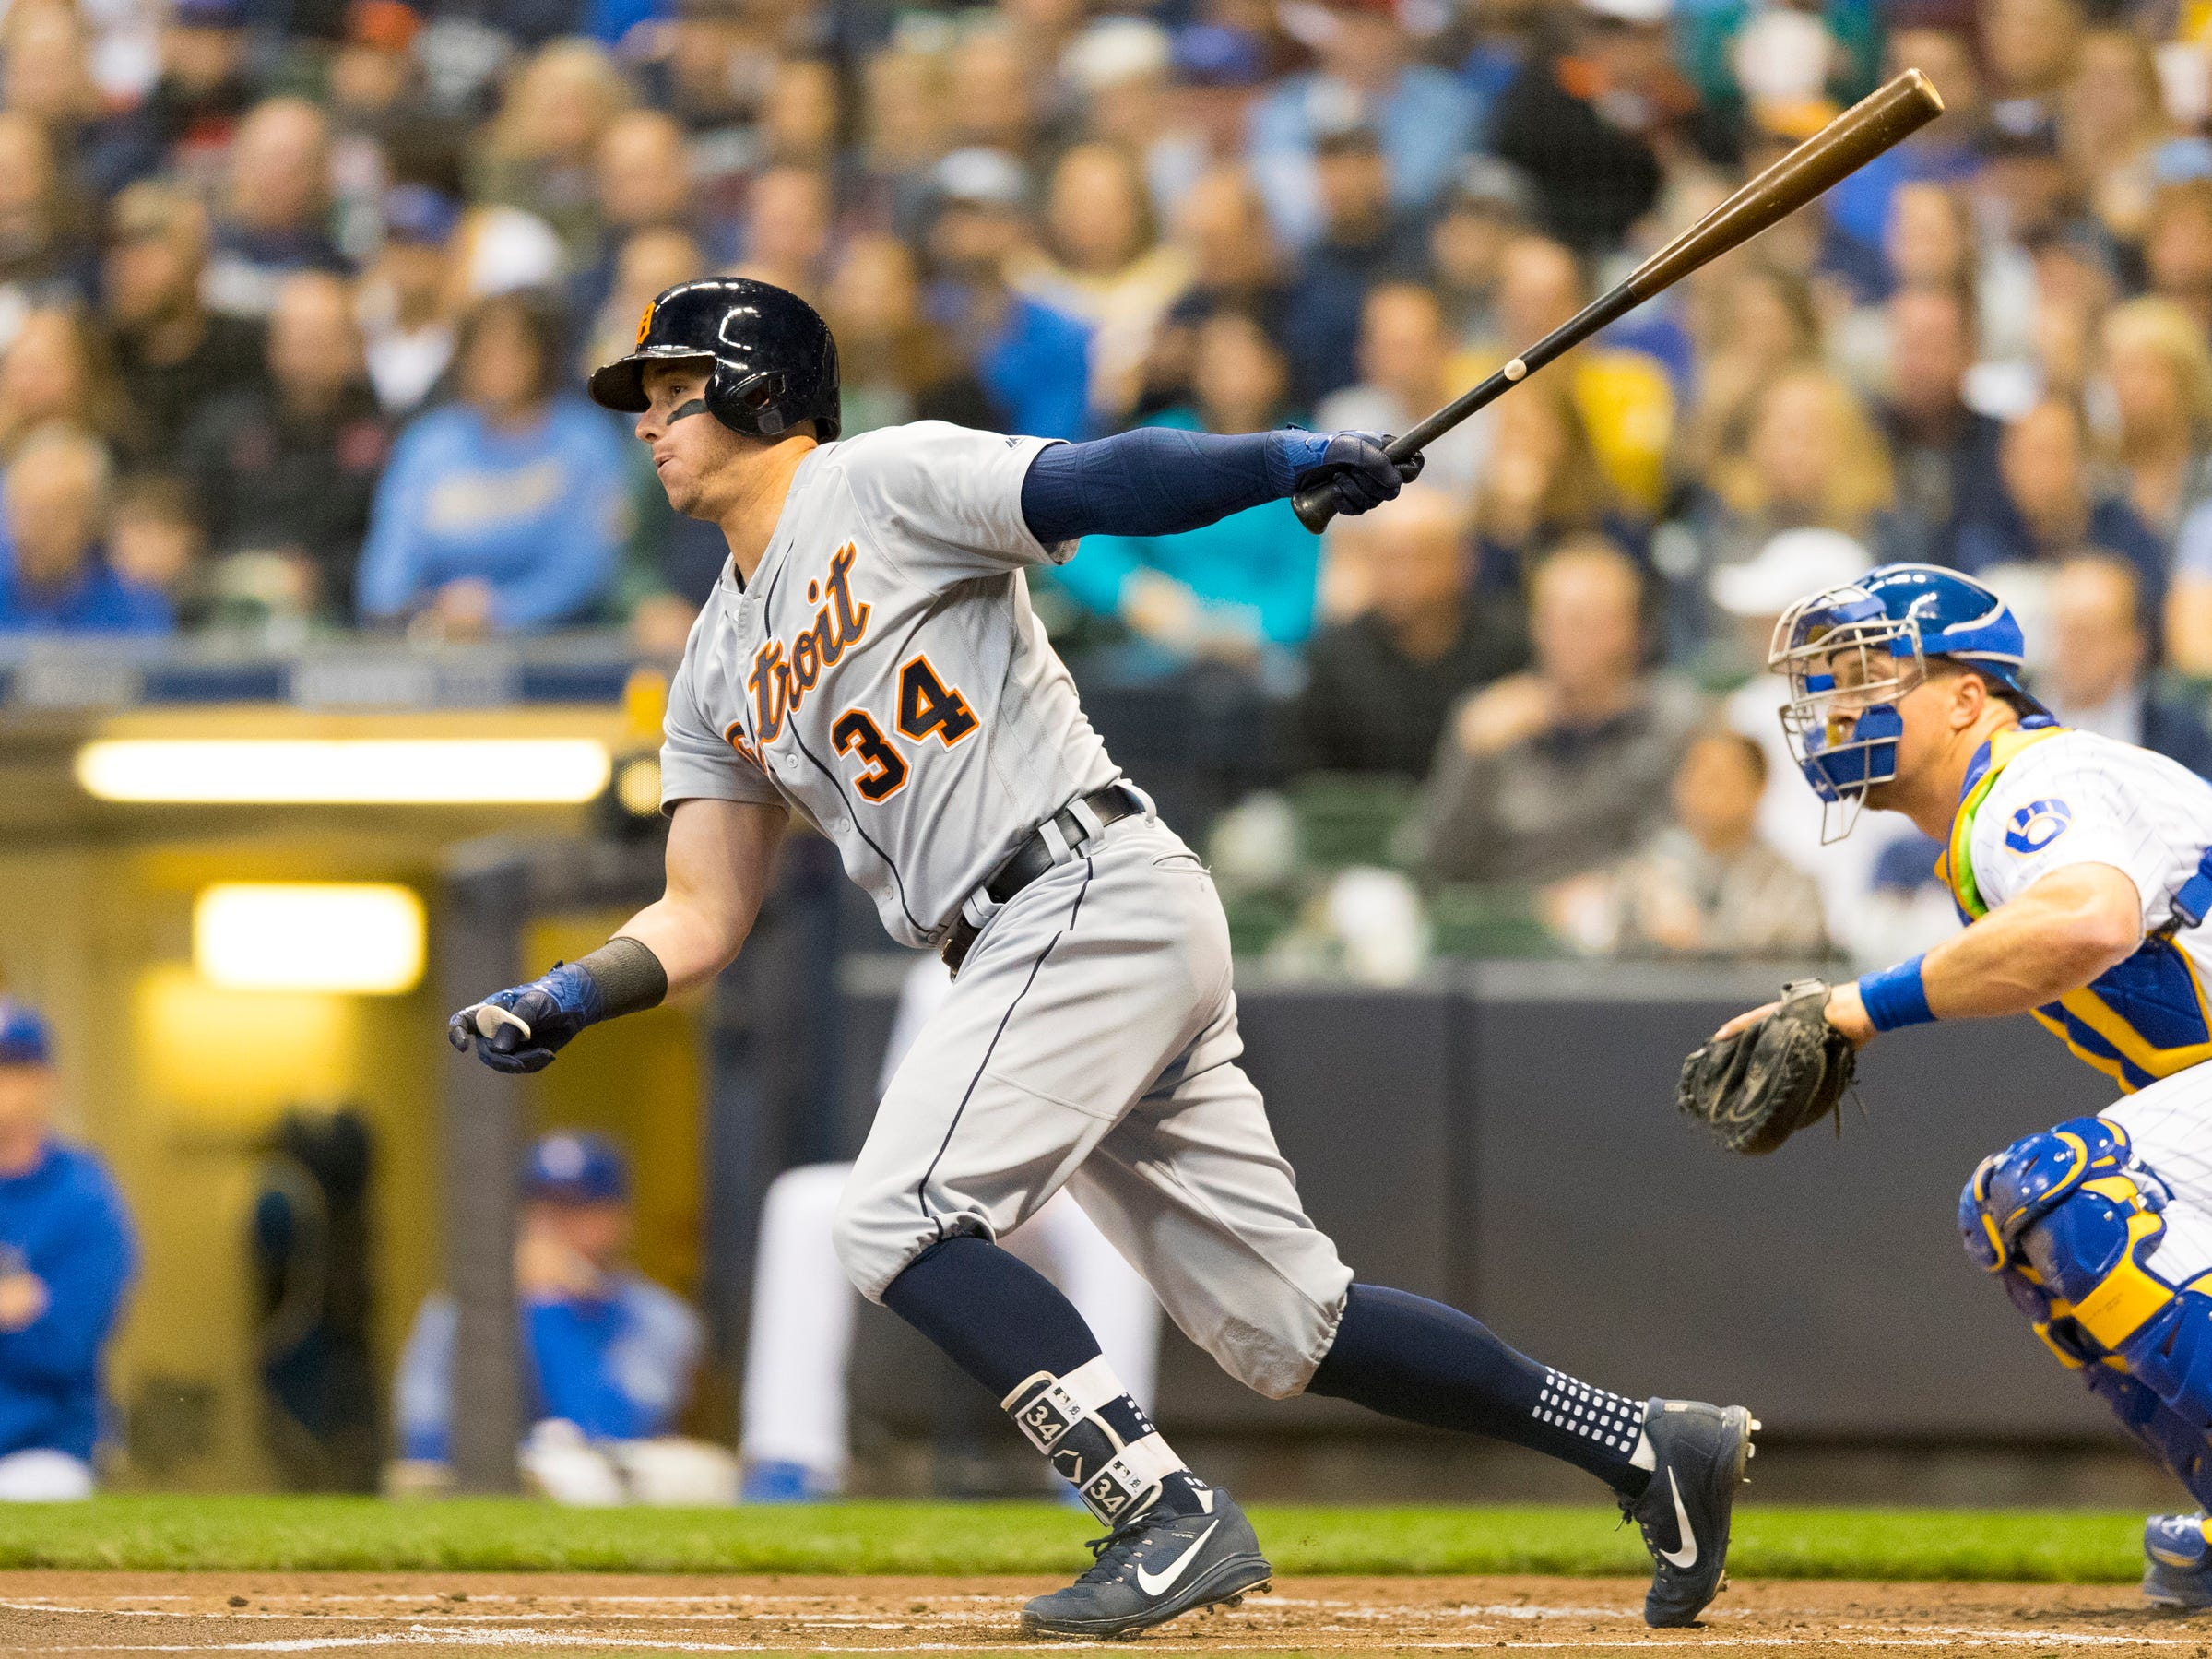 Detroit Tigers could move on from catcher James McCann. Here's why